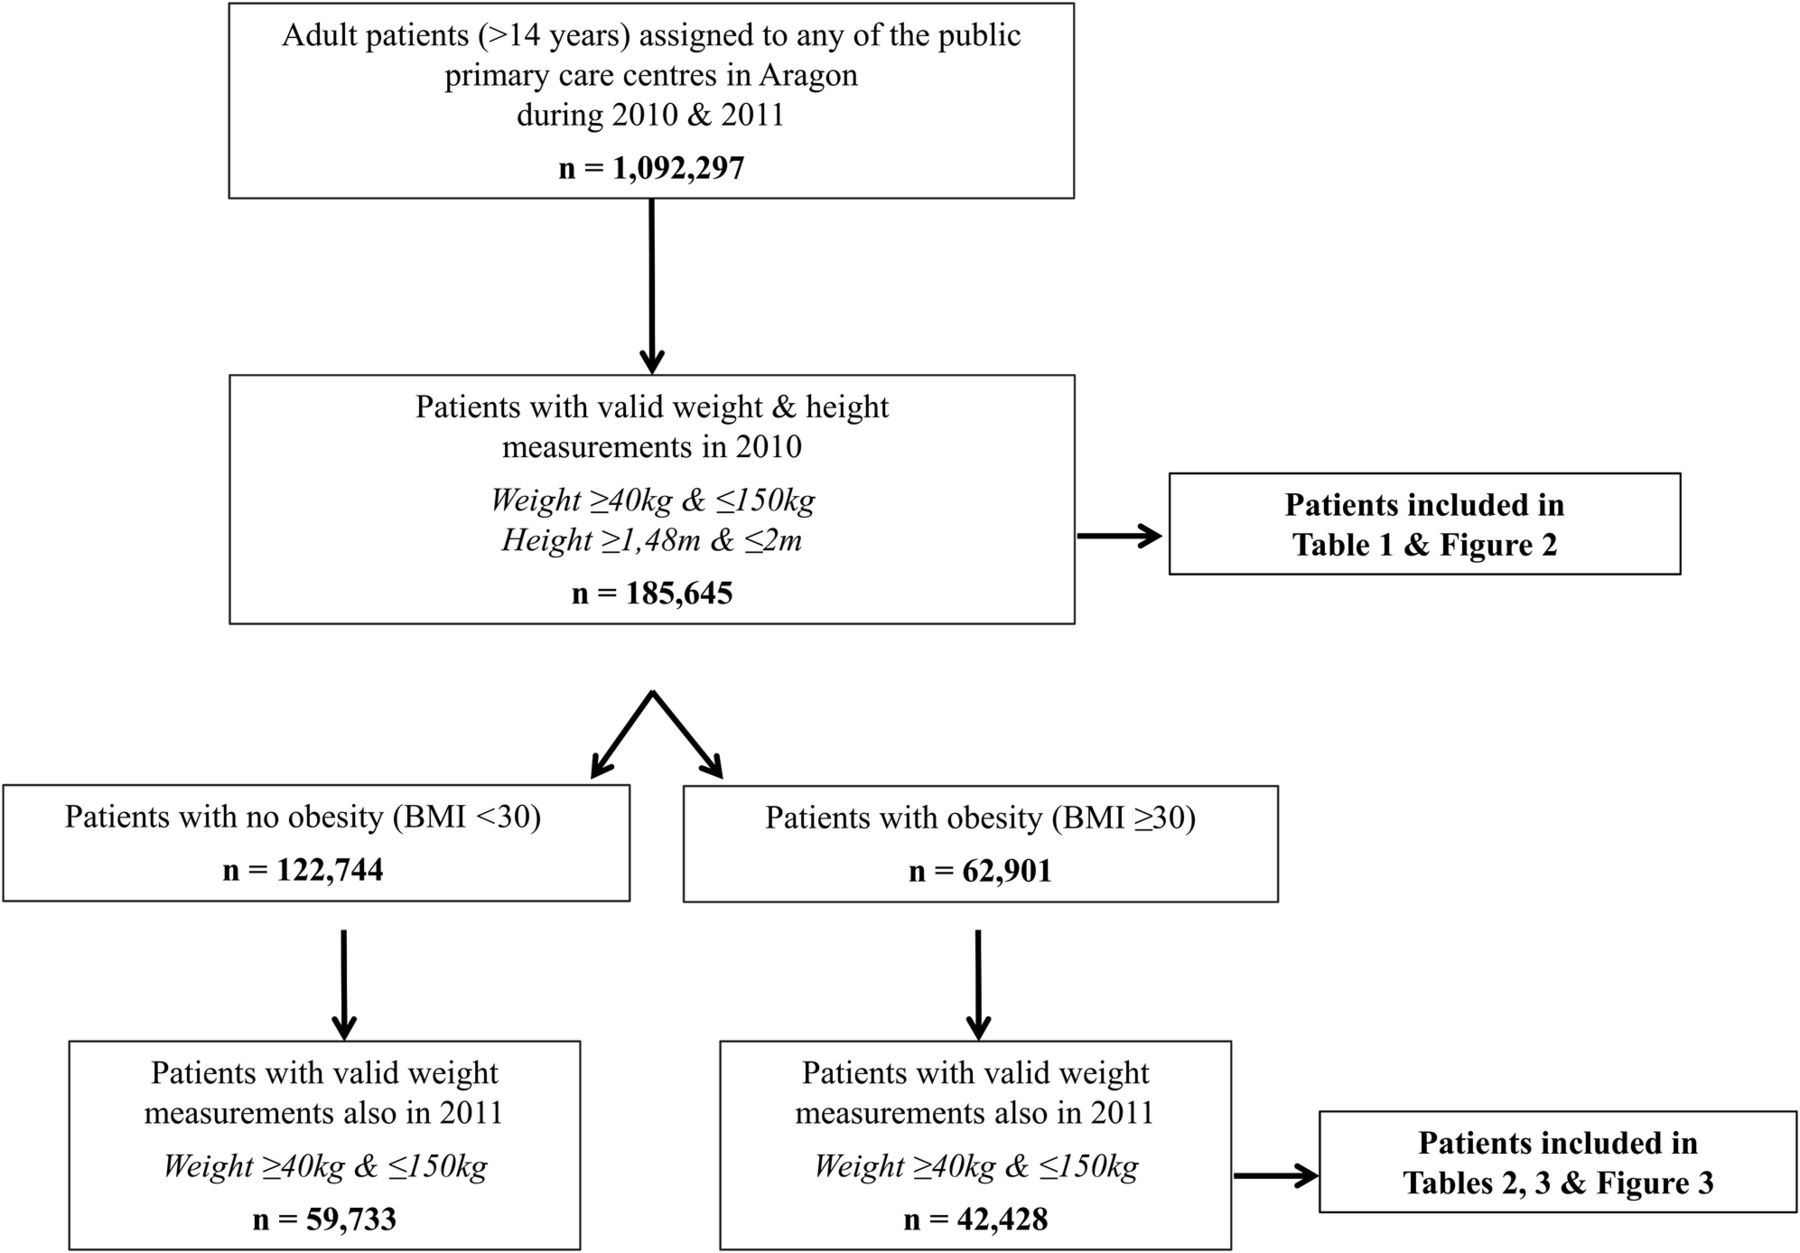 Multimorbidity And Weight Loss In Obese Primary Care Patients